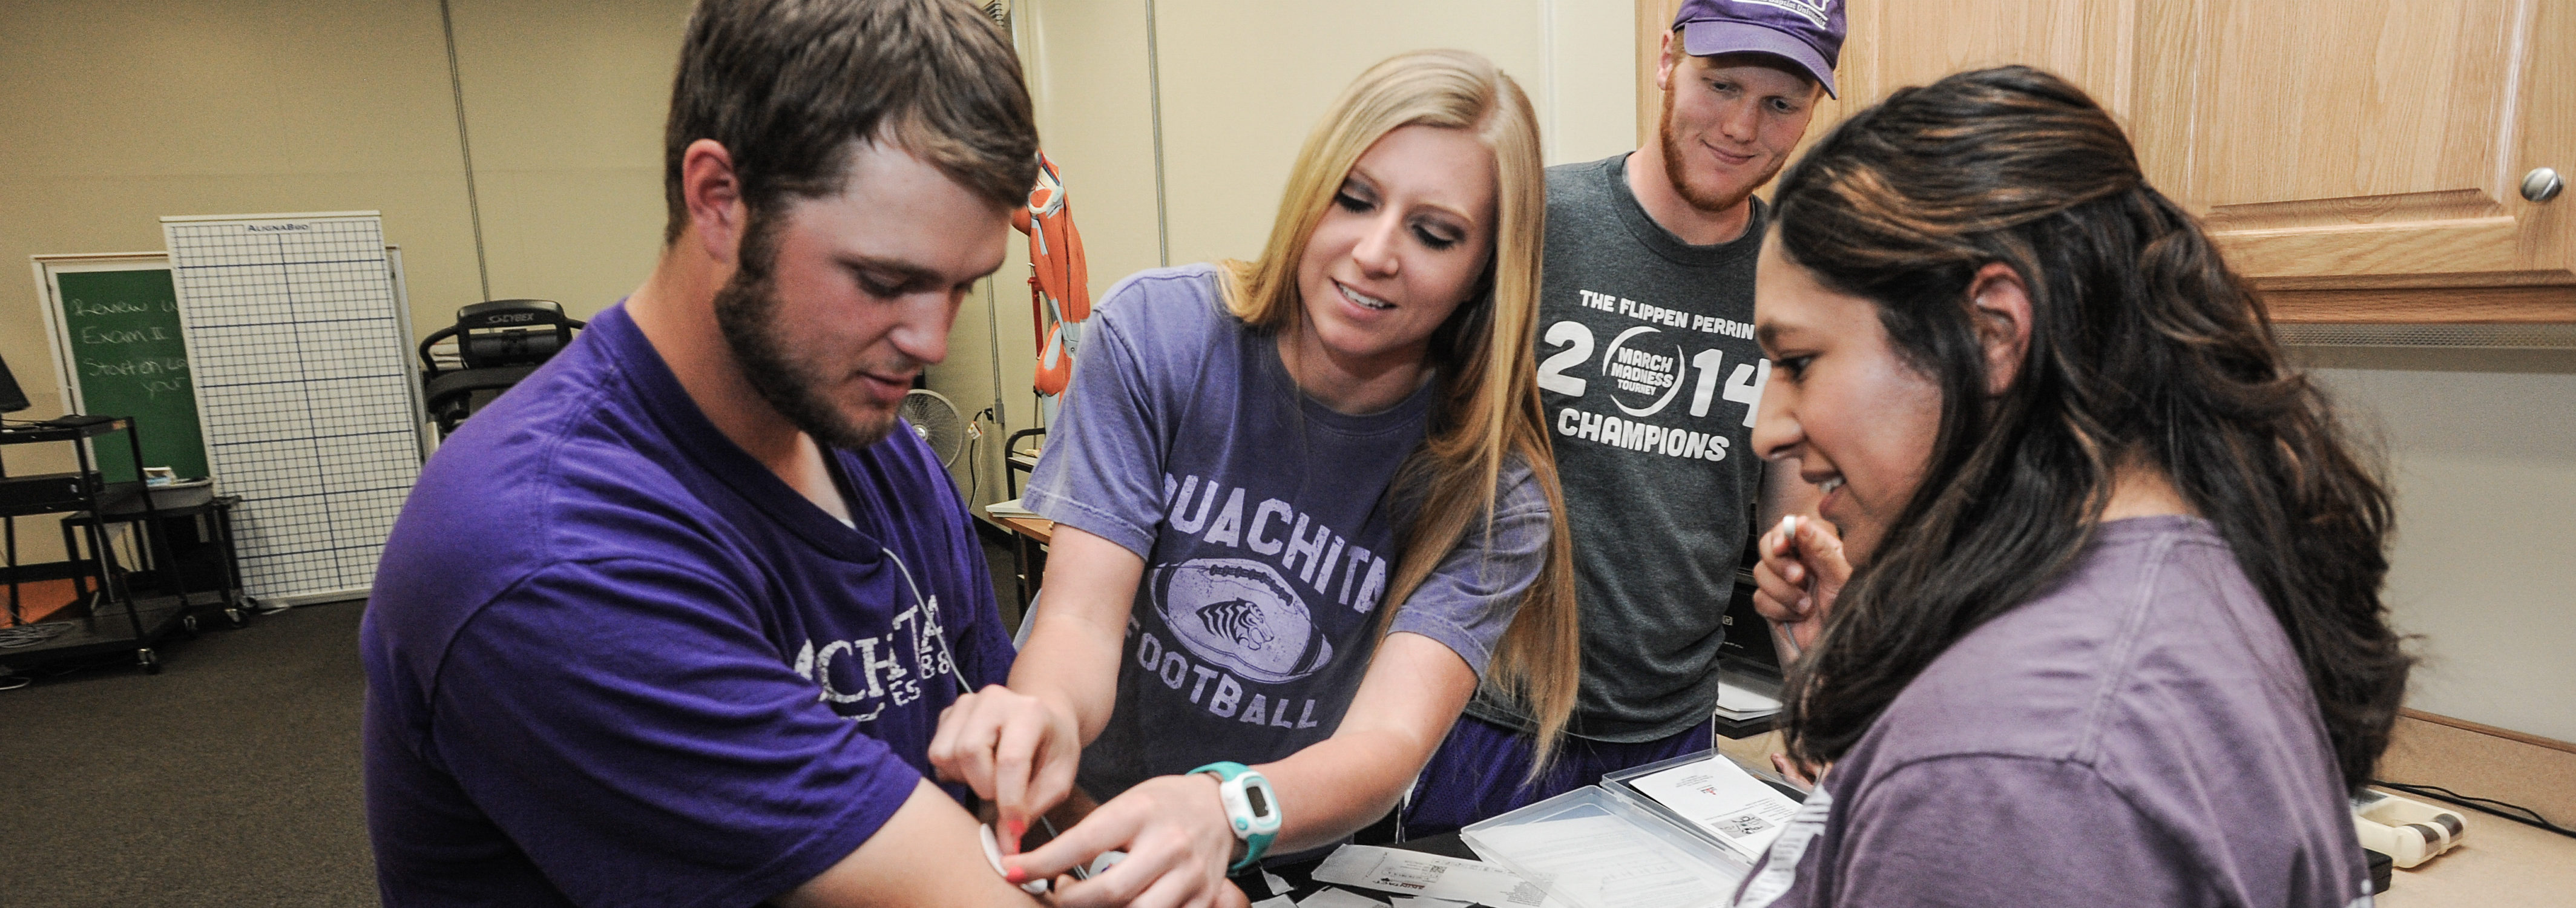 Ouachita received Gold Status credential, national recognition from the American College of Sports Medicine.